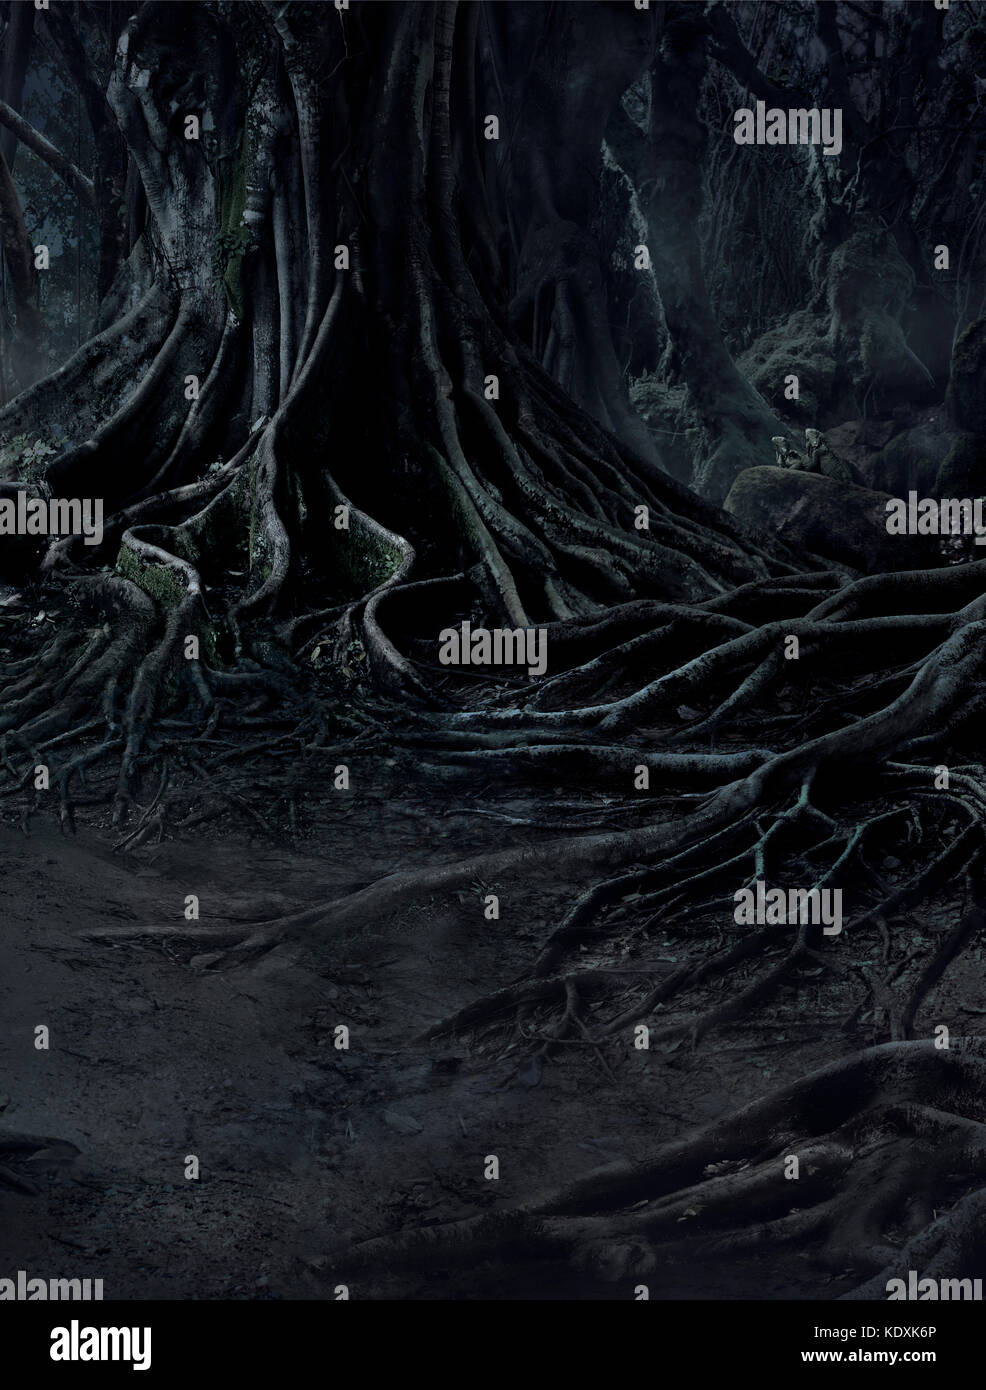 creepy trees with twisted roots and two lizard on misty night forest. Scary concept. - Stock Image